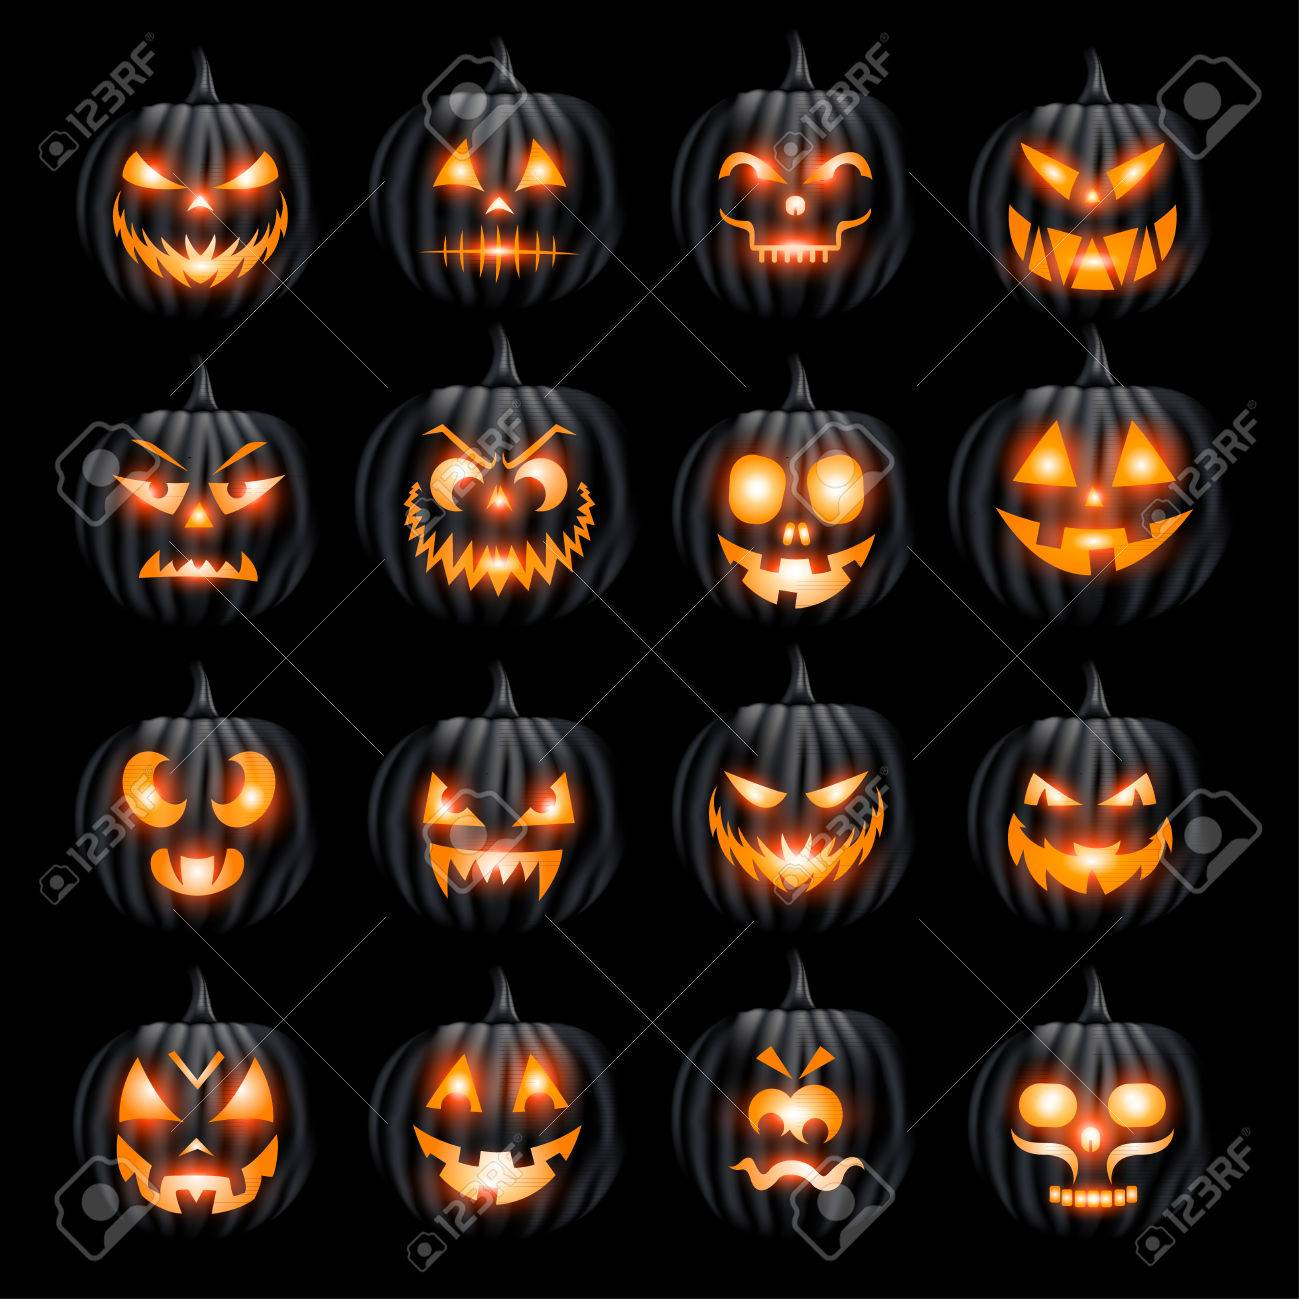 Pumpins Jack O Lantern Halloween Face Set On Black Background Royalty Free Cliparts Vectors And Stock Illustration Image 44512501